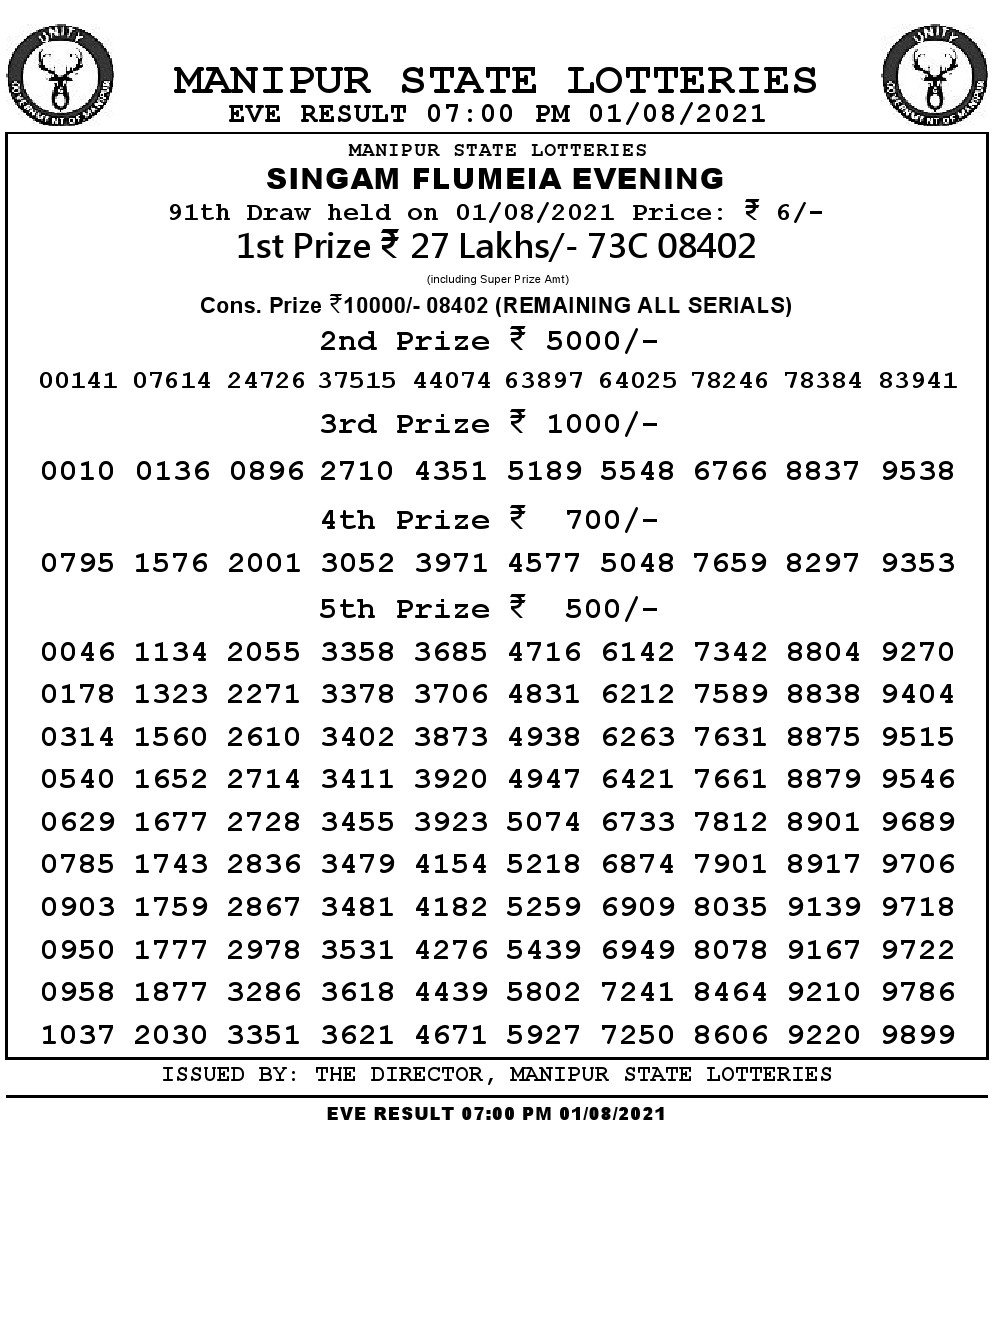 Manipur Lottery Result today 01/08/2021 singam 7pm pdf download